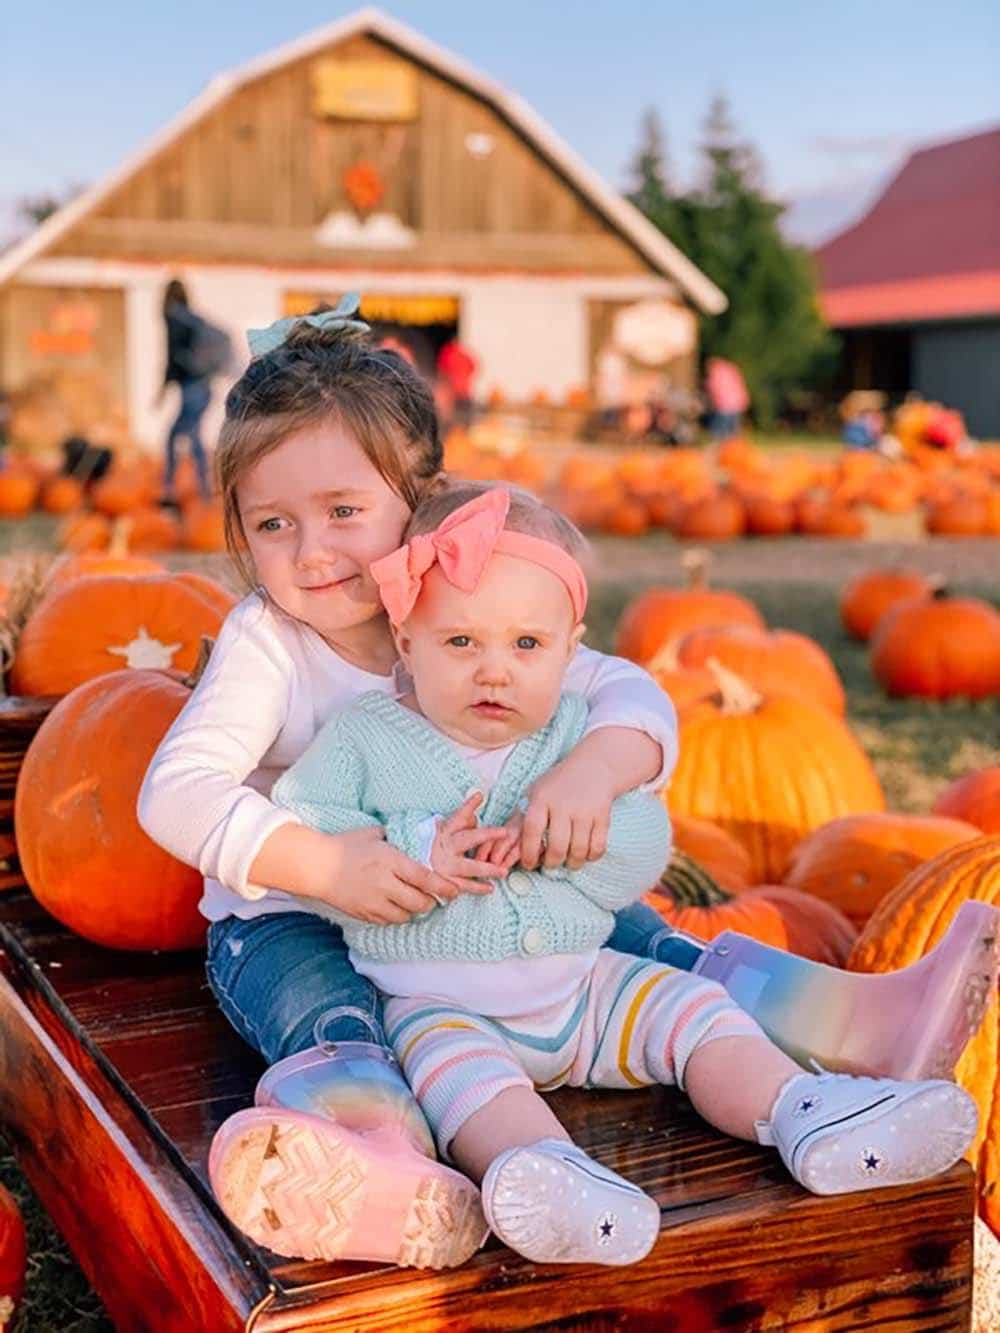 luca and gwen at the pumpkin patch